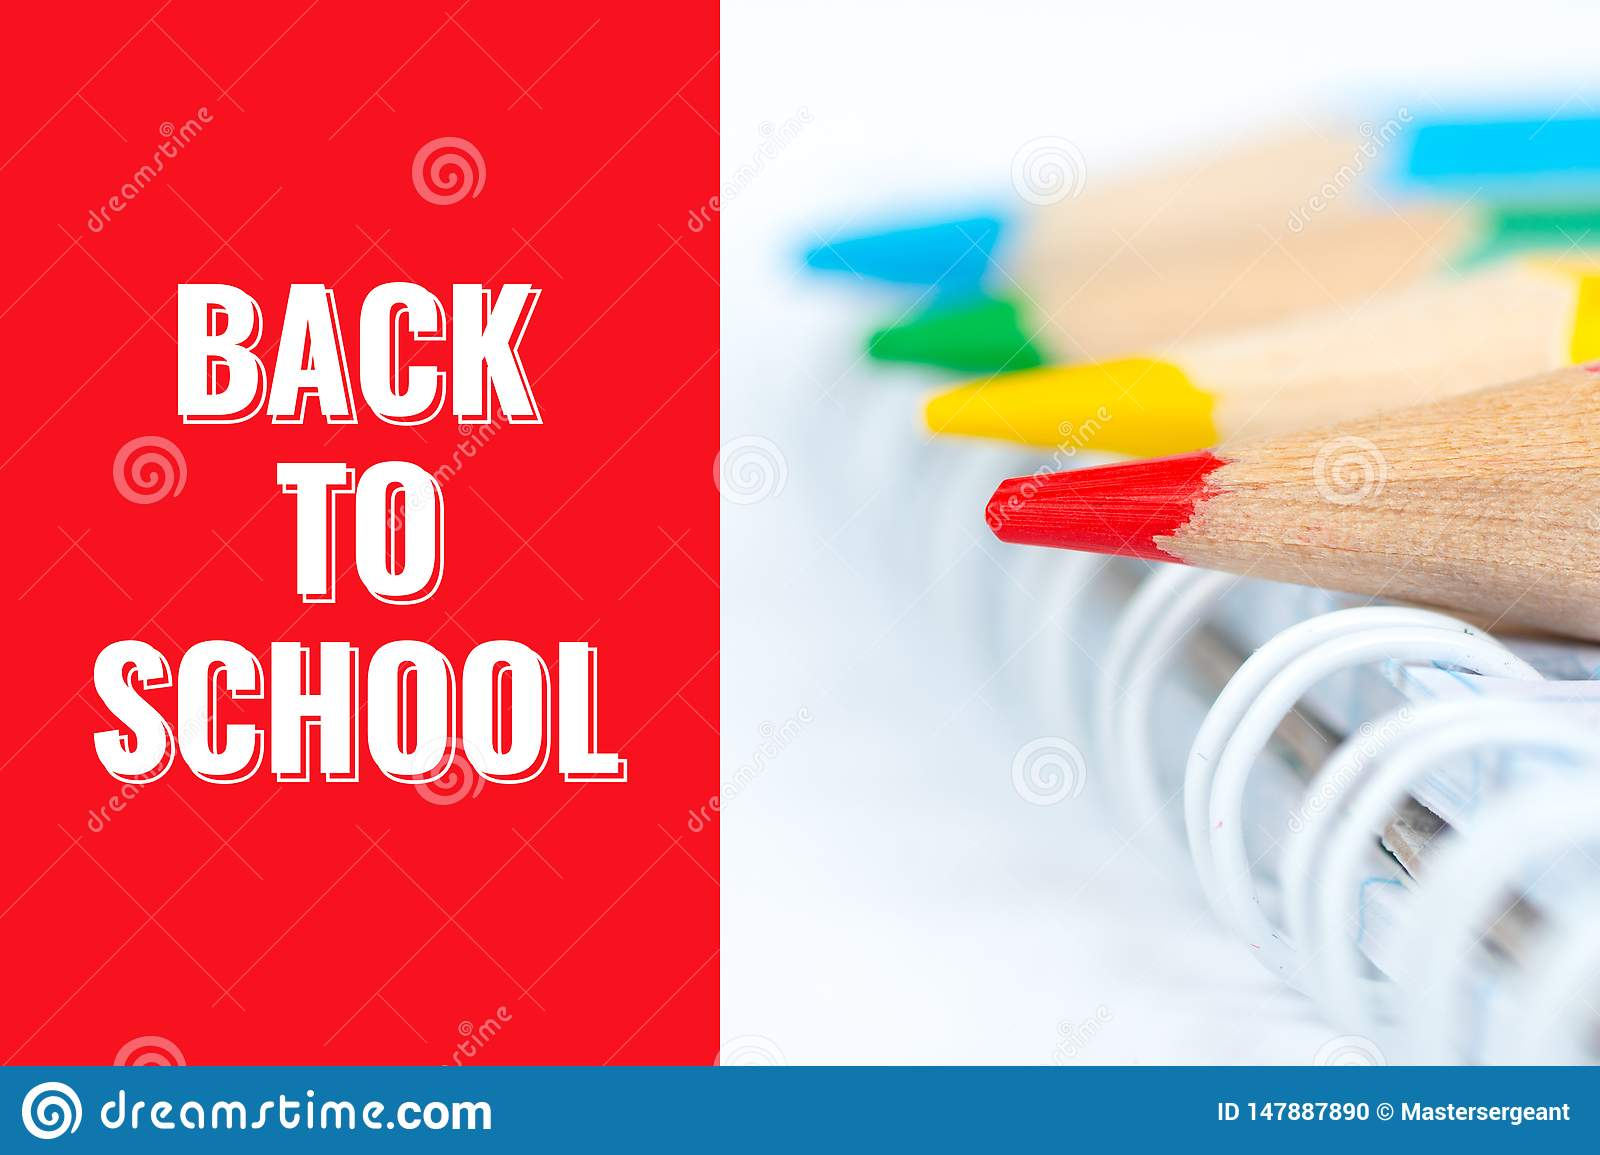 Back to school, postcard with pencils